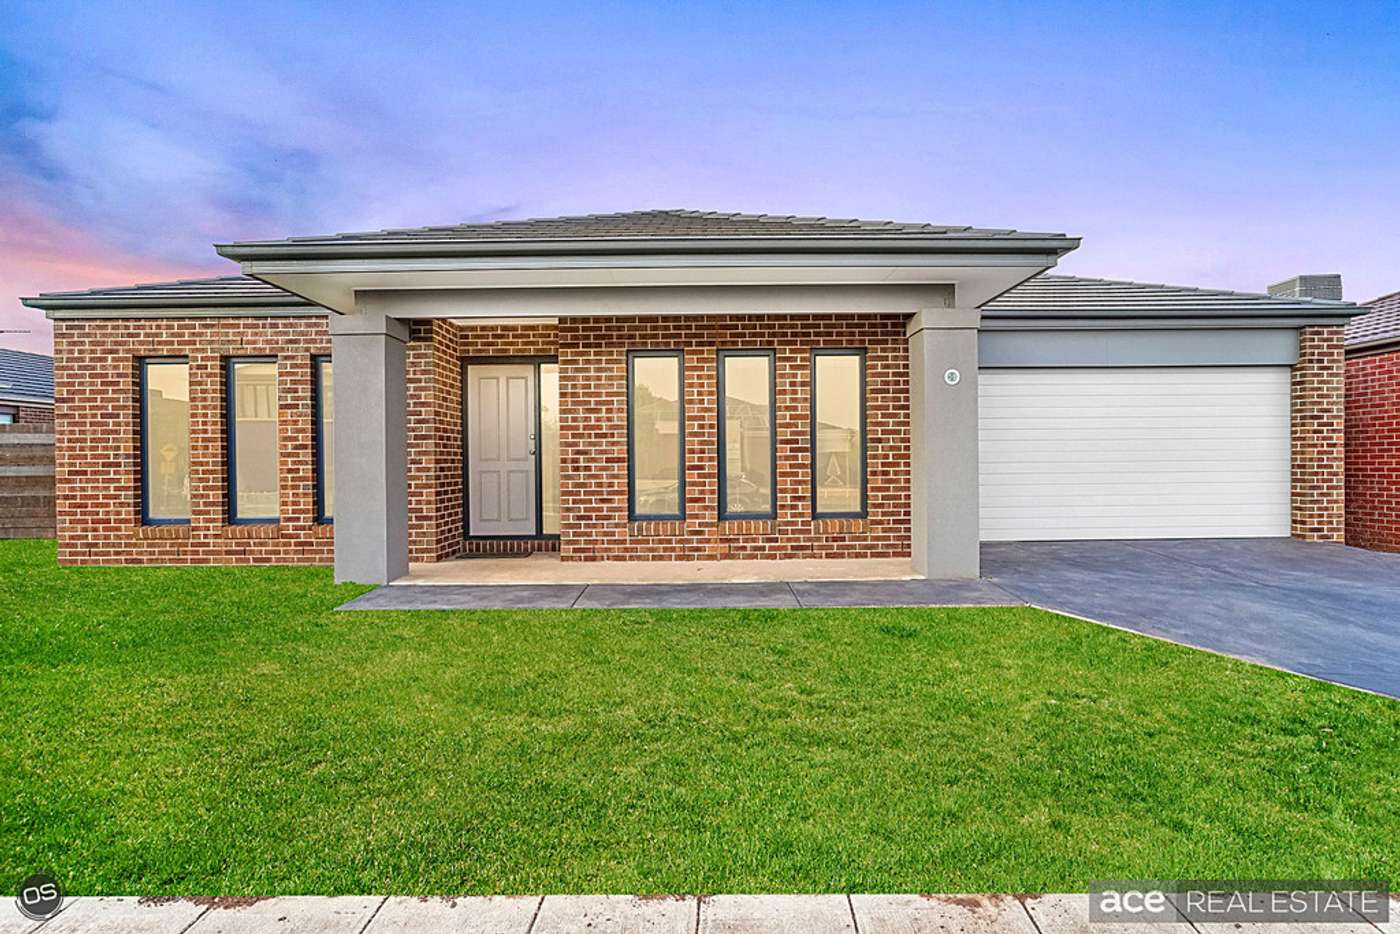 Main view of Homely house listing, 38 Samaria Street, Tarneit VIC 3029